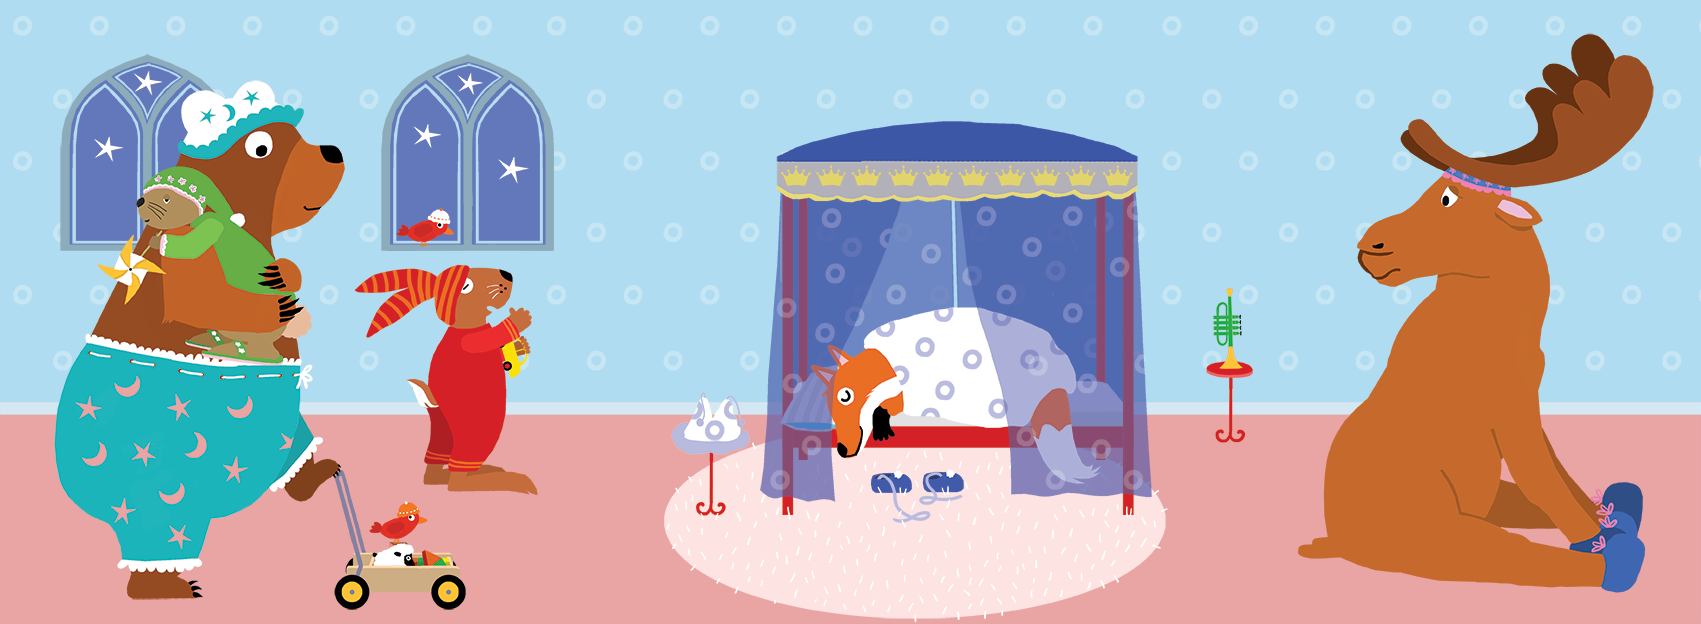 celebrate-picture-books-picture-book-review-my-bed-fox's-bed